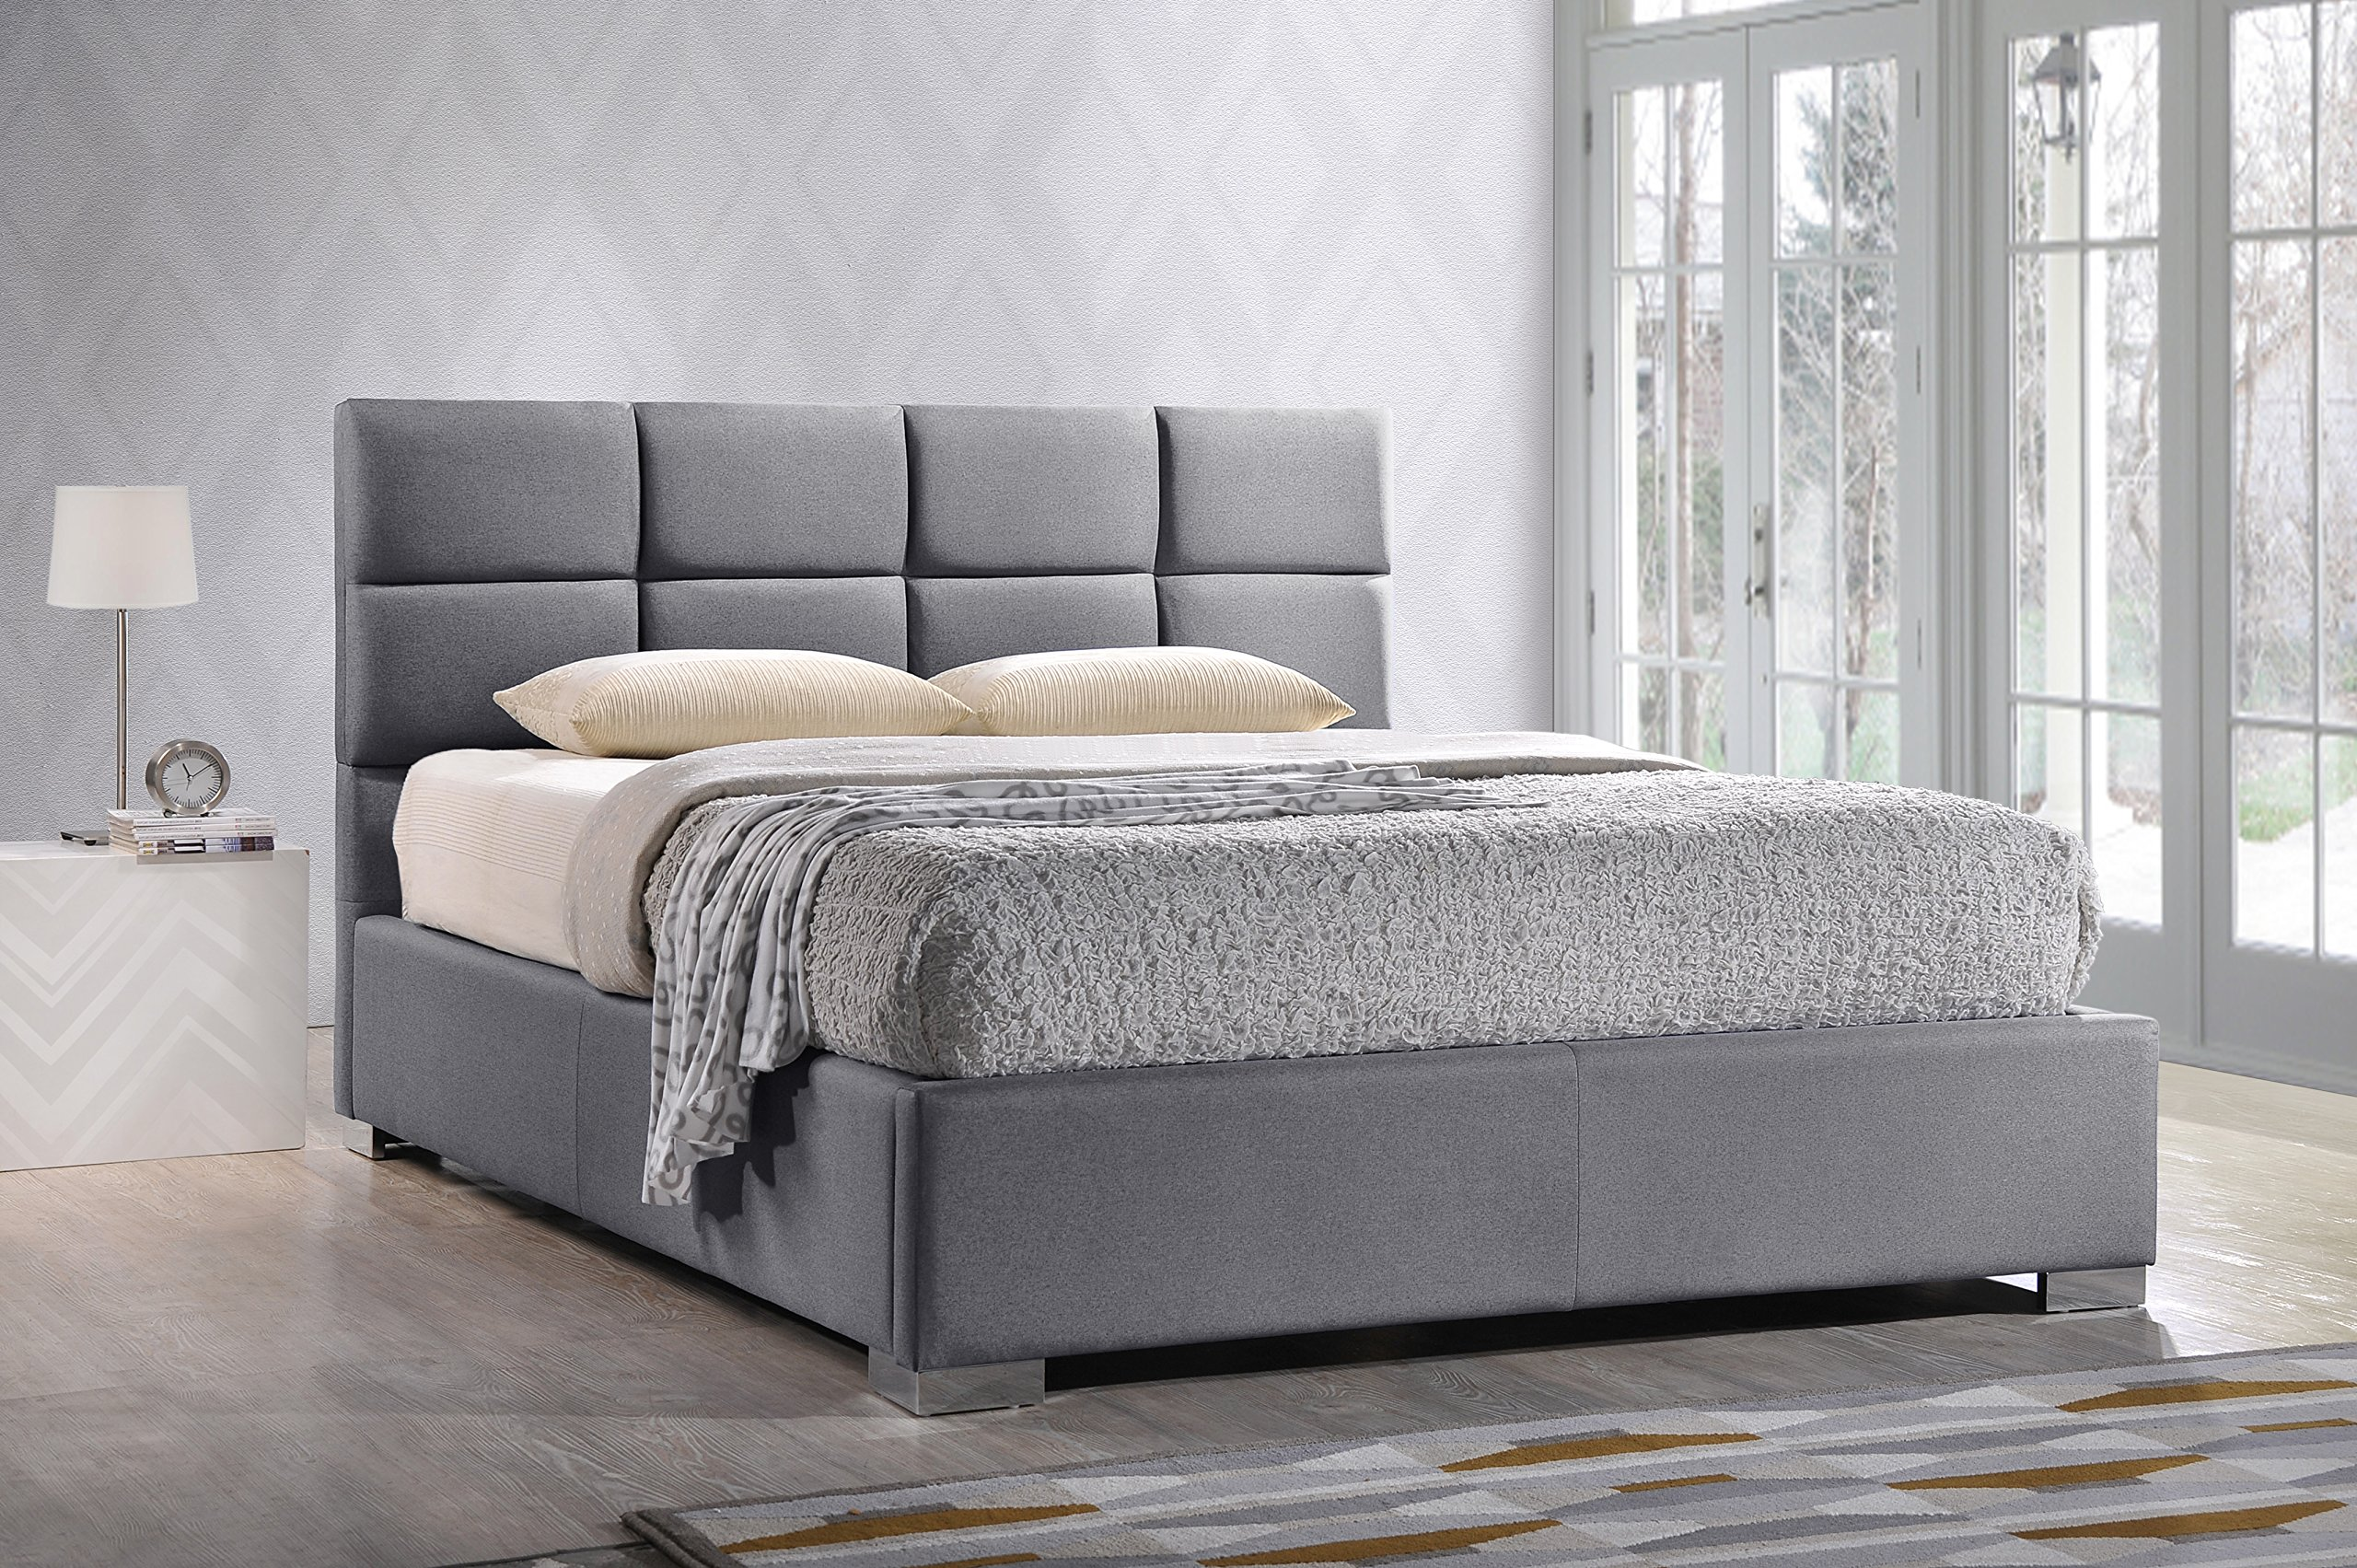 Baxton Studio Sophie Modern & Contemporary Fabric Upholstered Platform Bed, King, Grey by Baxton Studio